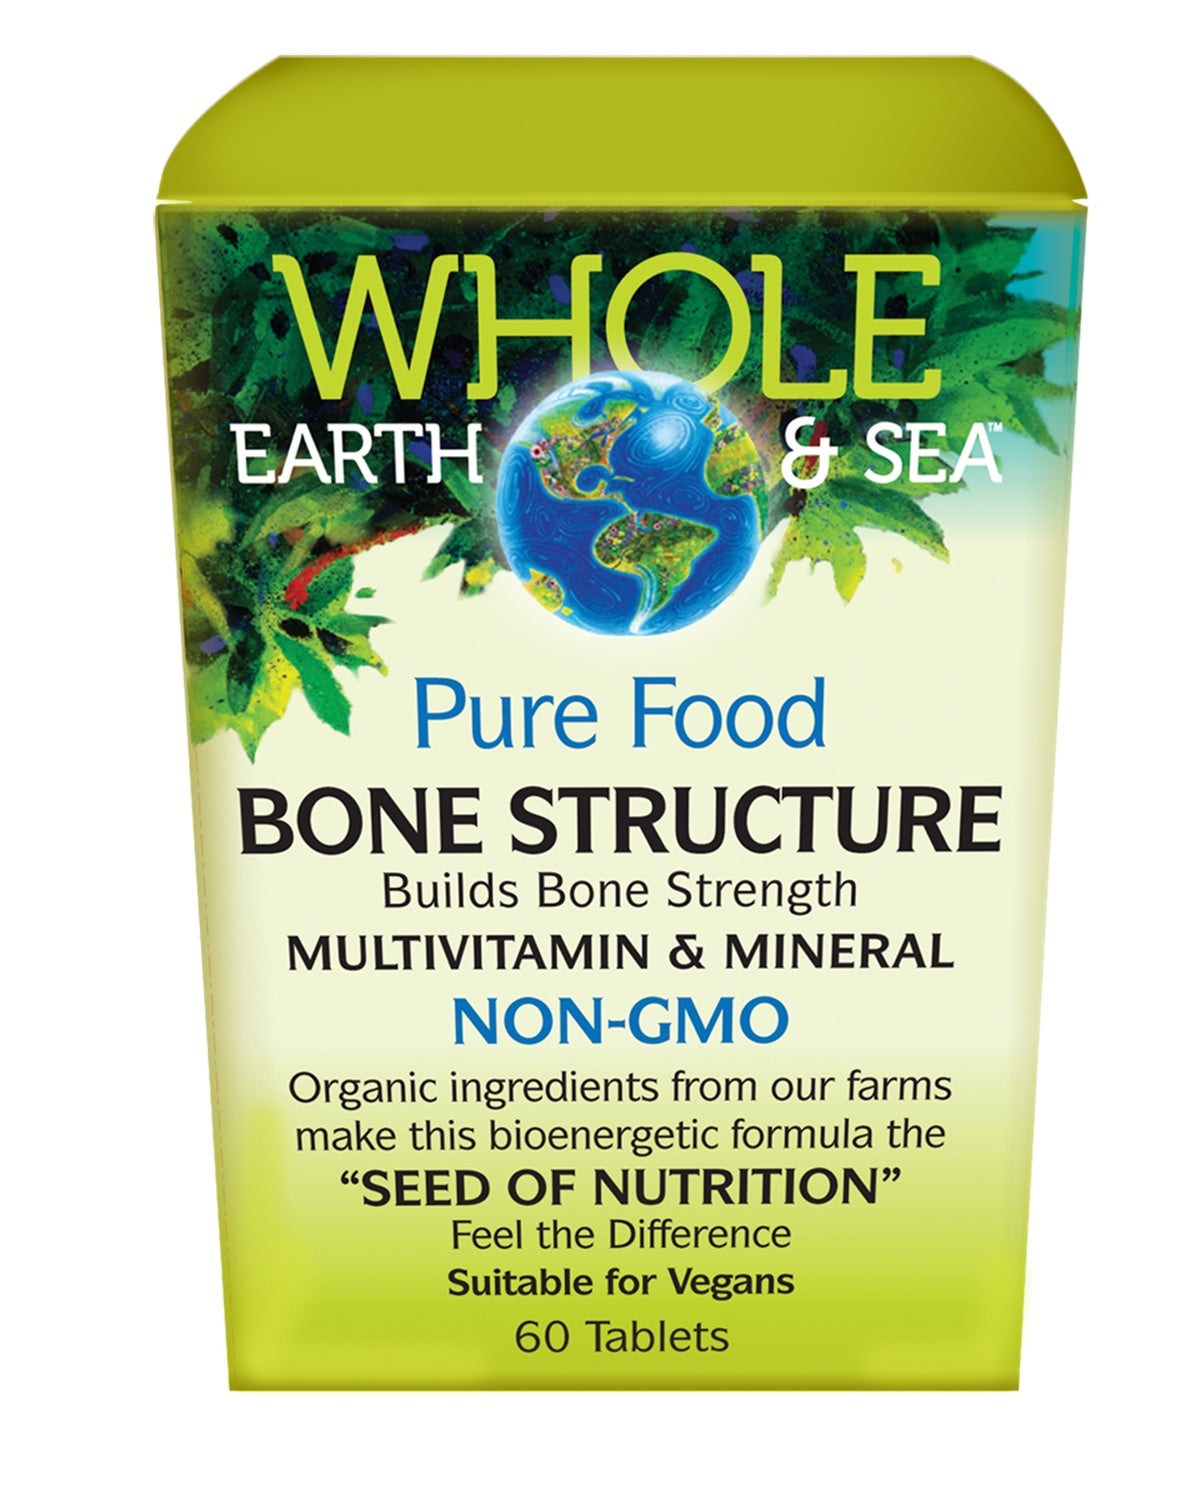 Supplements & Vitamins - Whole Earth & Sea - Bone Structure Multivitamin & Mineral, 60 Tabs